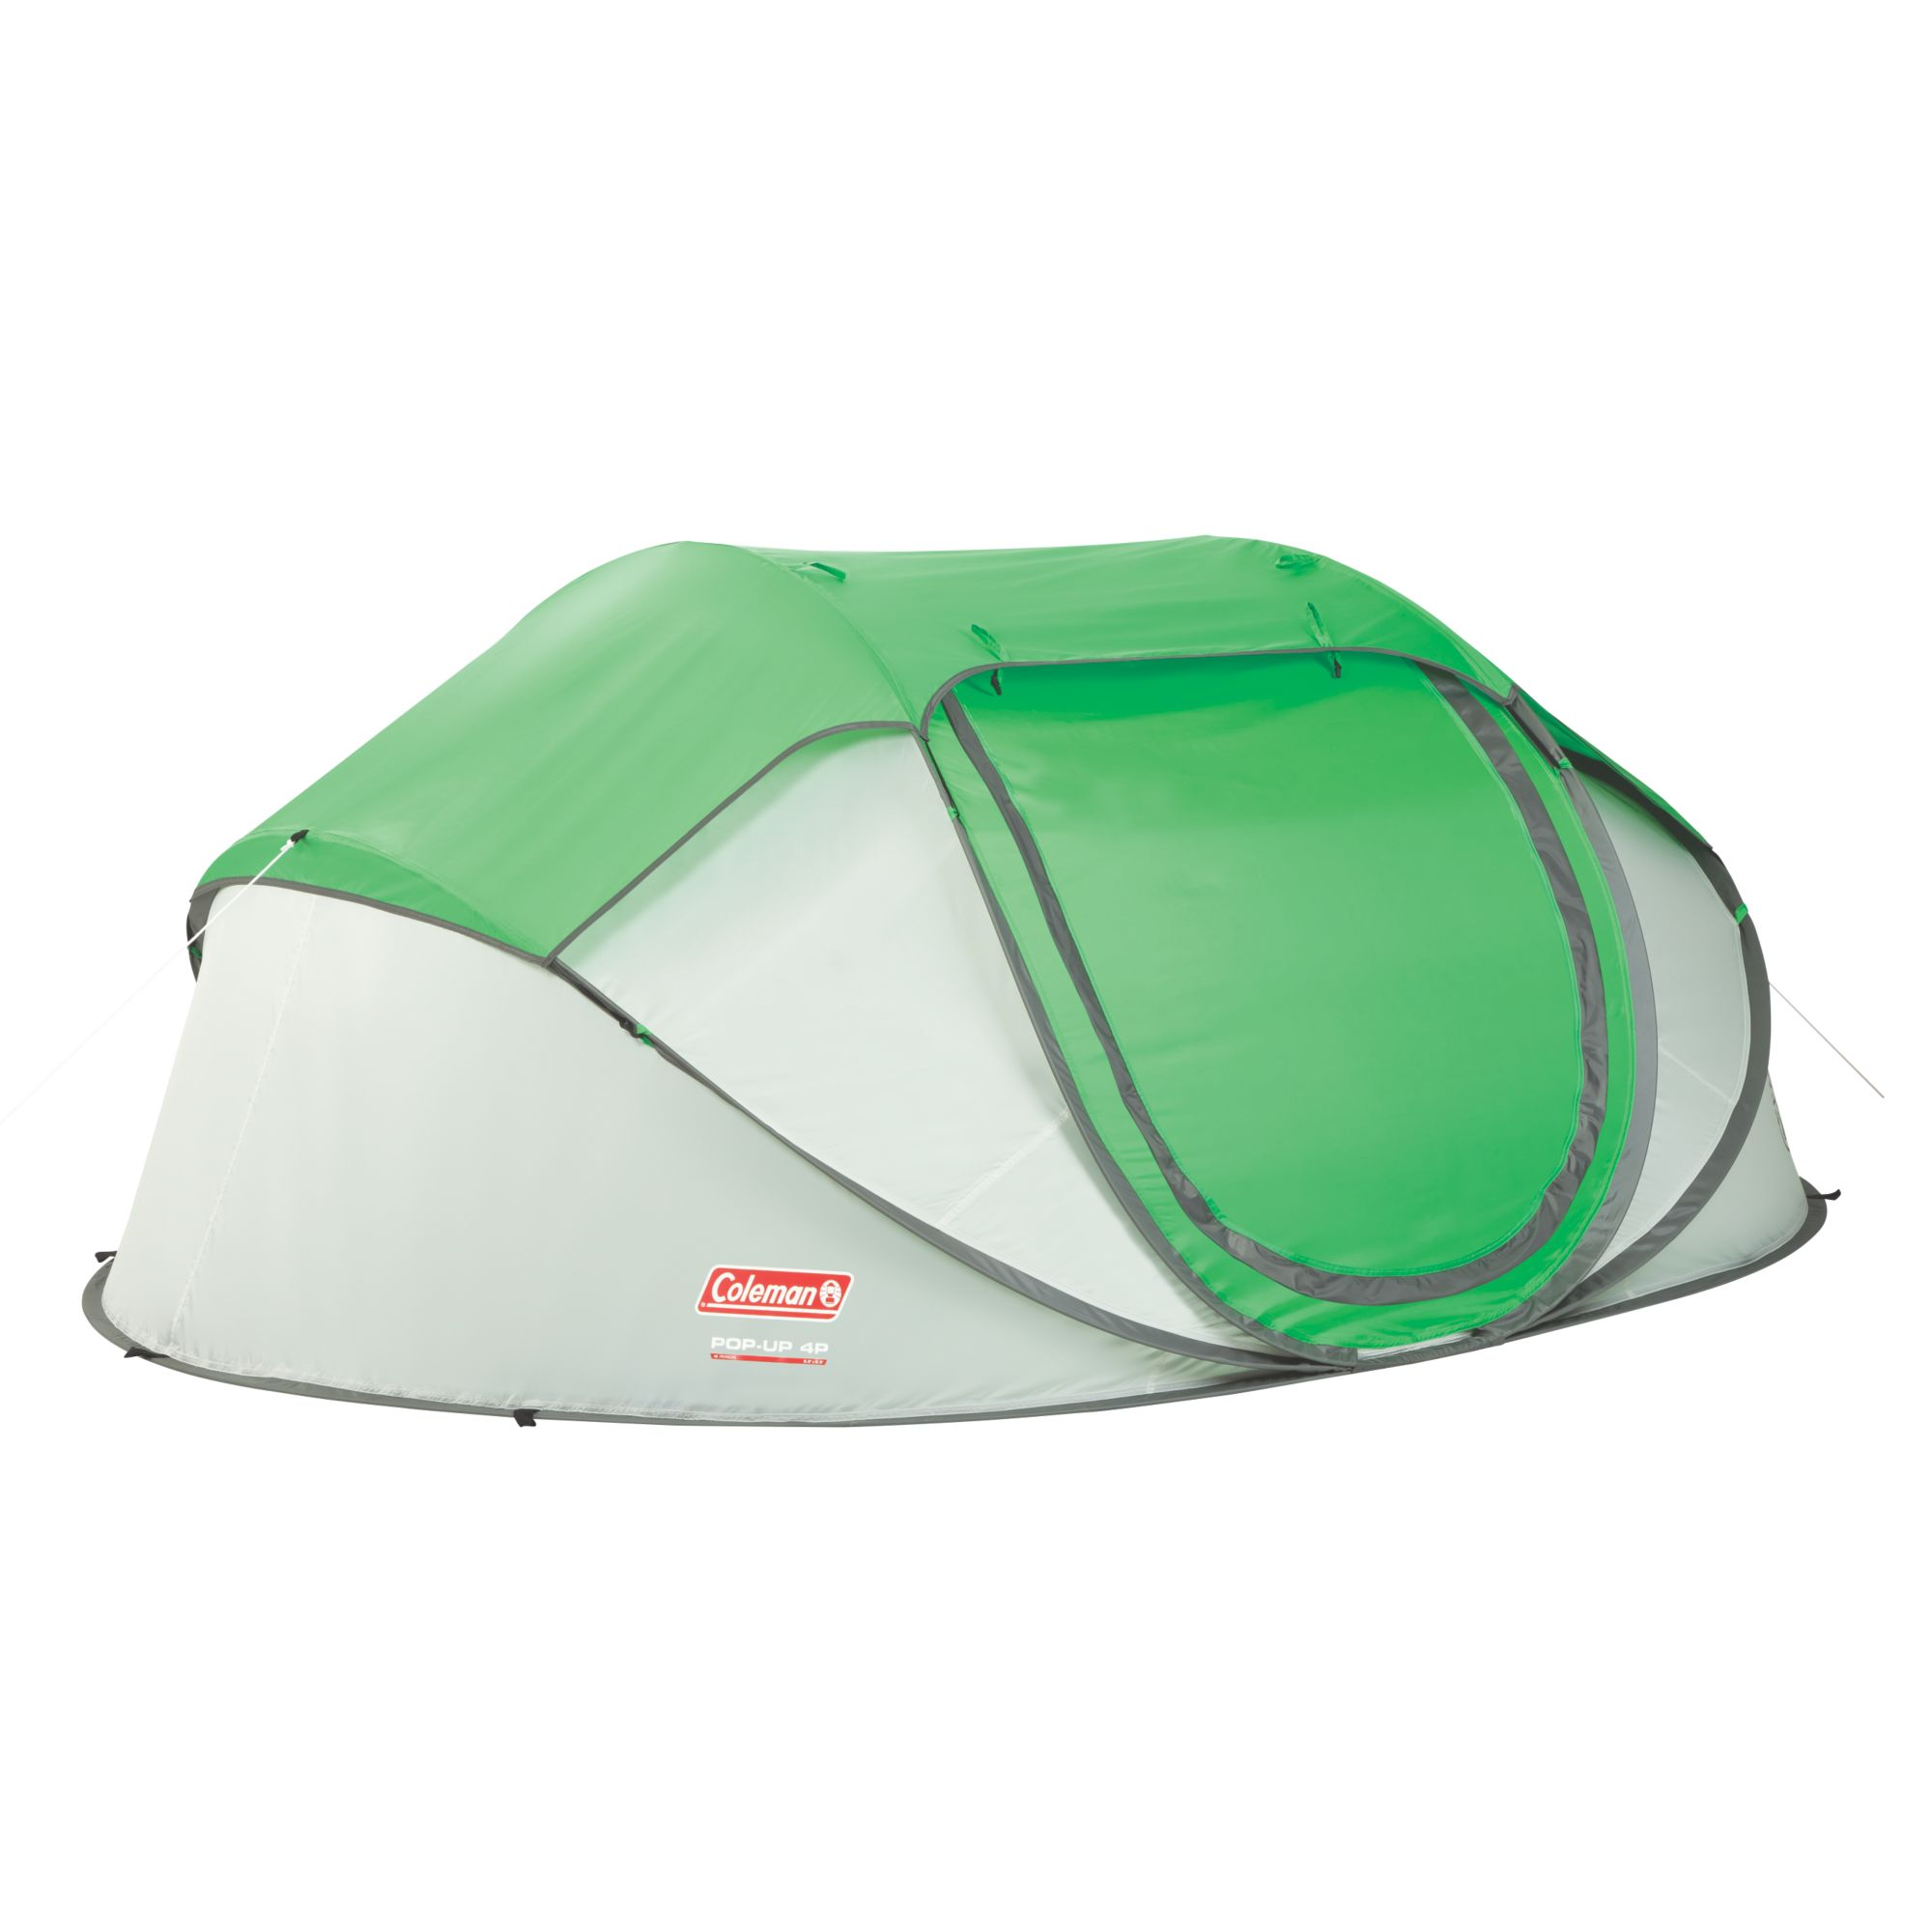 66a85bca709 ... 4-Person Pop-Up Tent image 1 ...